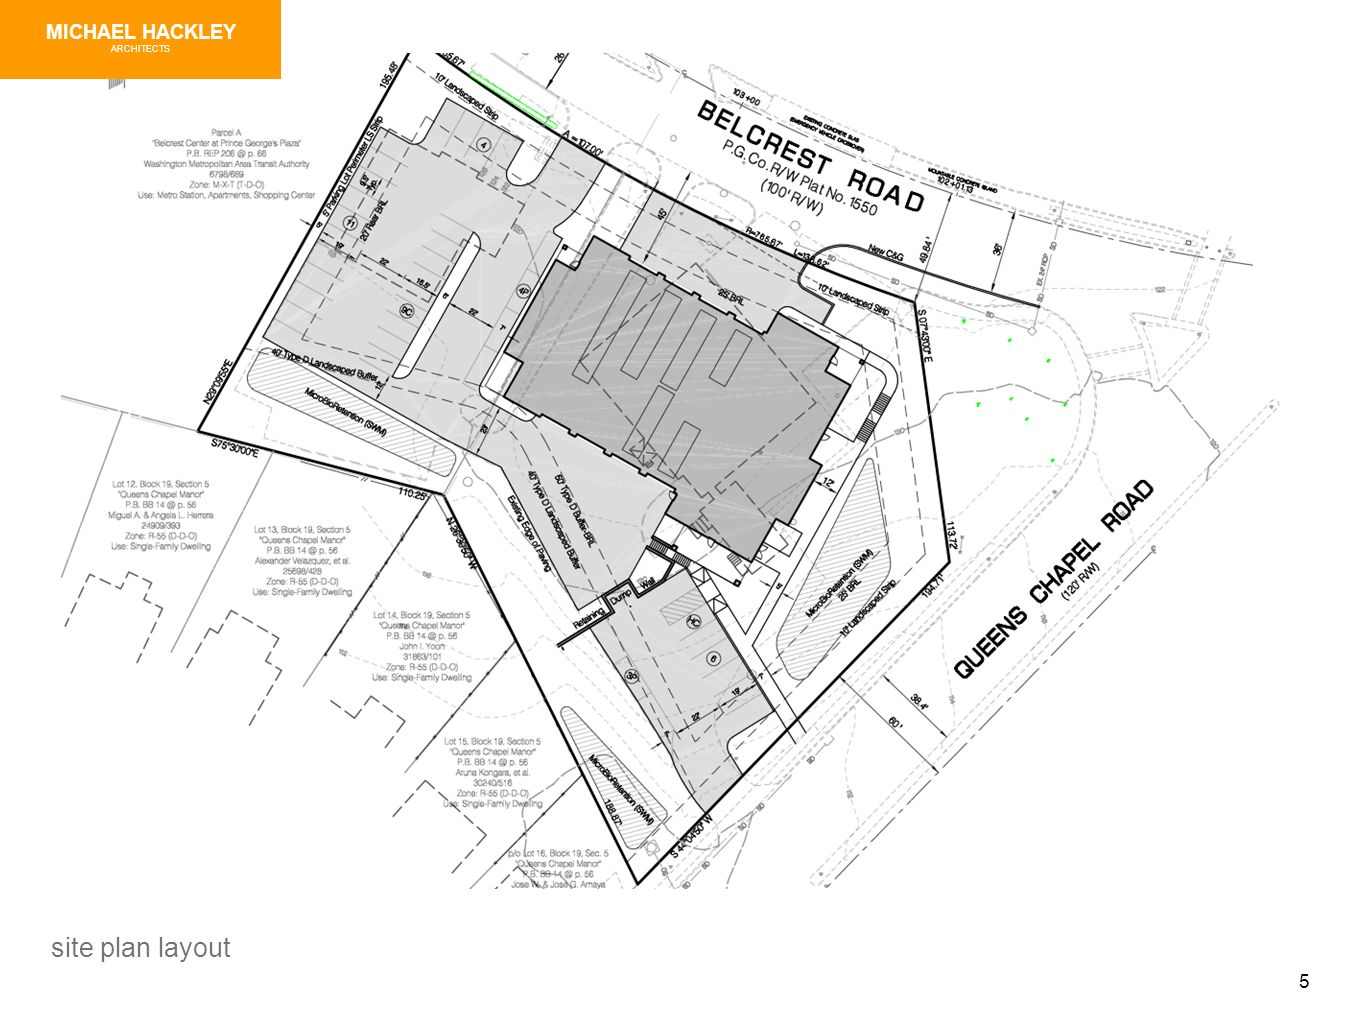 5 site plan layout MICHAEL HACKLEY ARCHITECTS